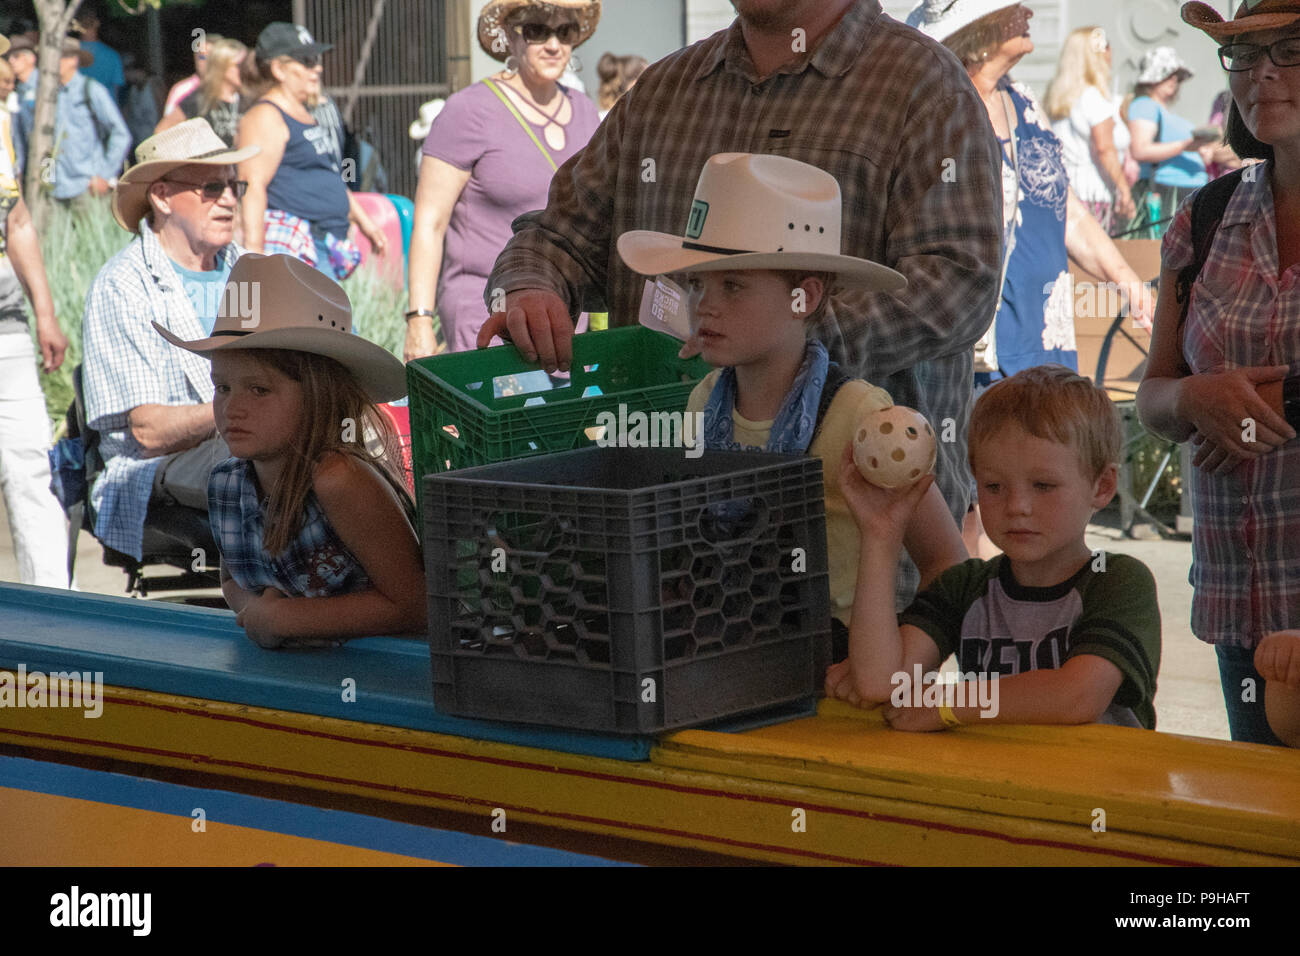 Kids playing ball toss at the Calgary Stampede Midway, Stampede Grounds, Calgary, Alberta, Canada - Stock Image